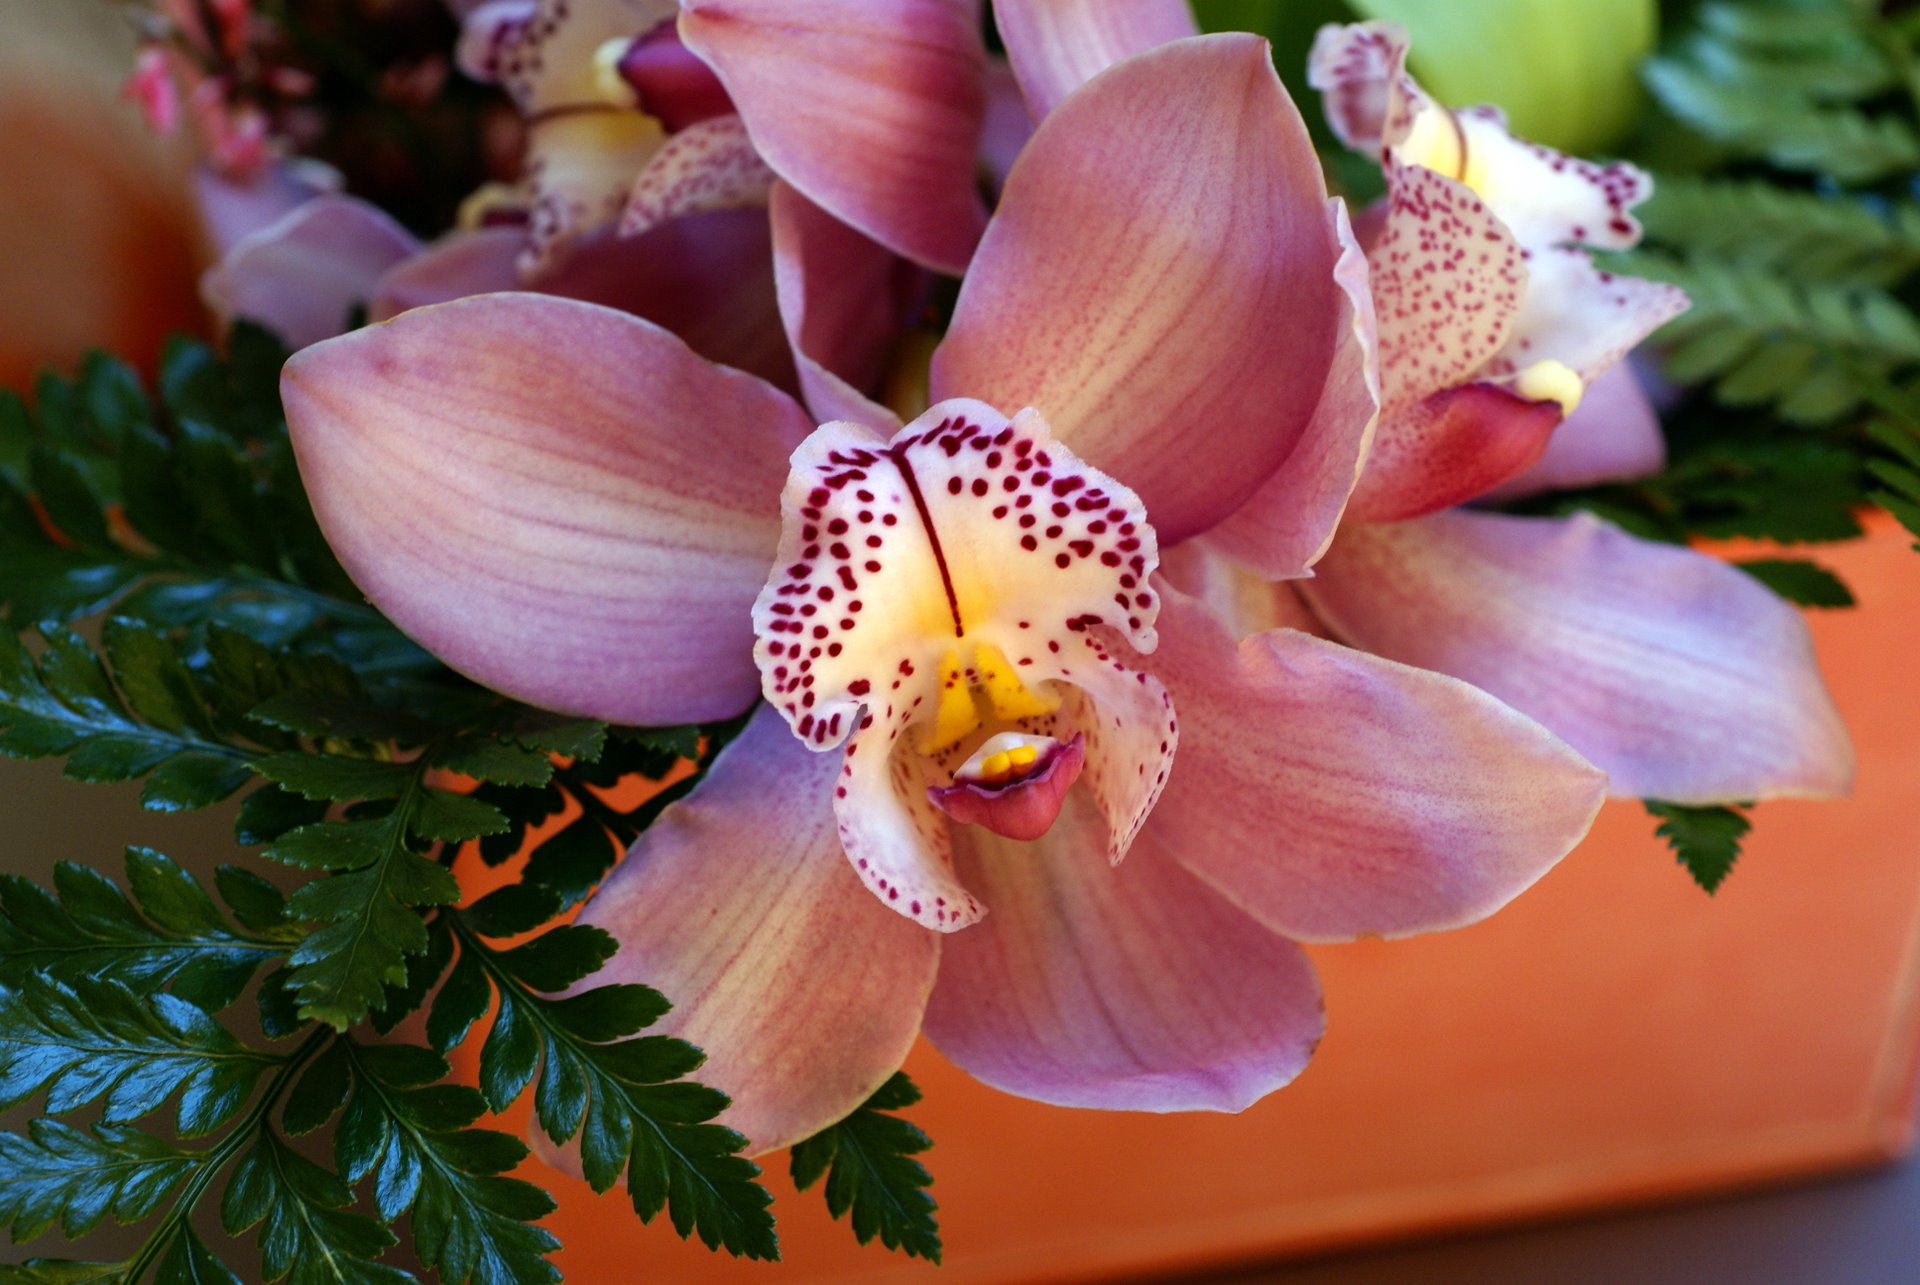 beautiful-orchid-00916.jpg